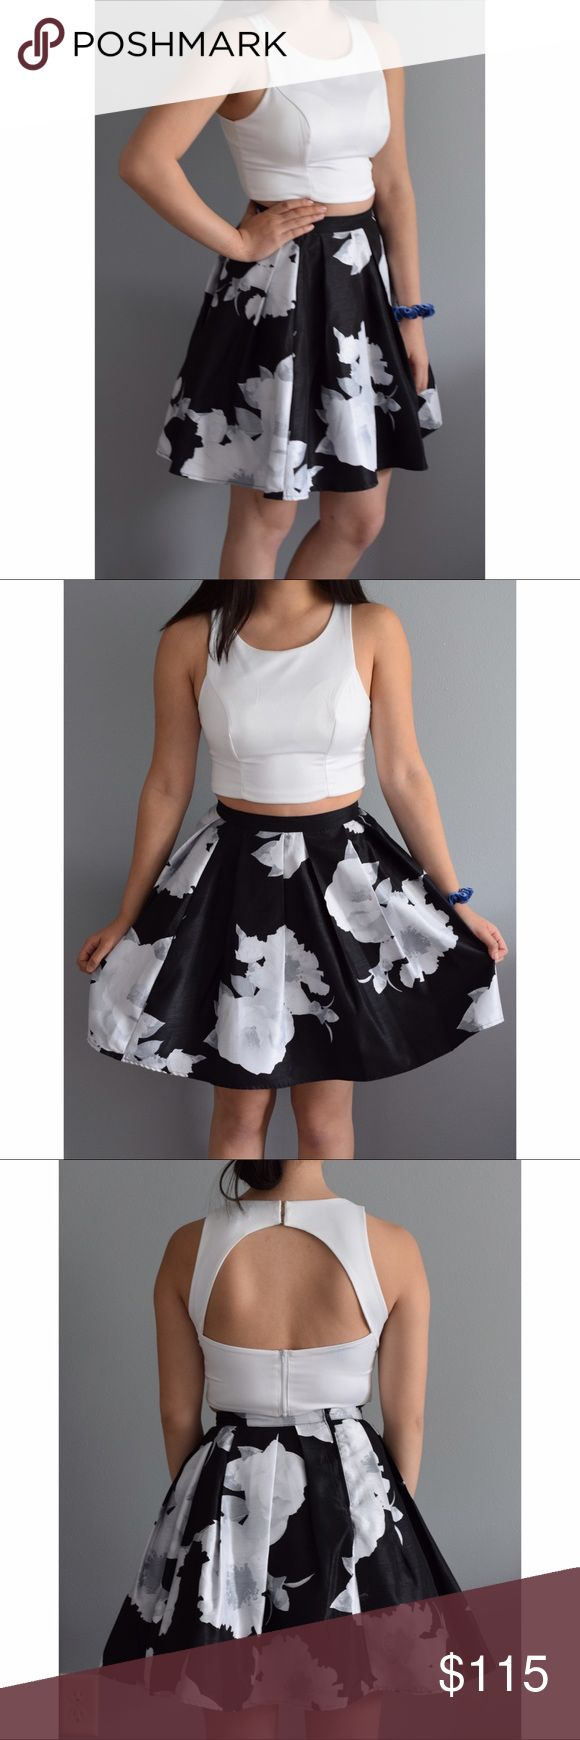 Black and white two piece dress Worn once. It is a size 1 and in good condition. The skirt is black with white flowers and the top is a white silky material with an open back. Price is negotiable. Dresses Prom